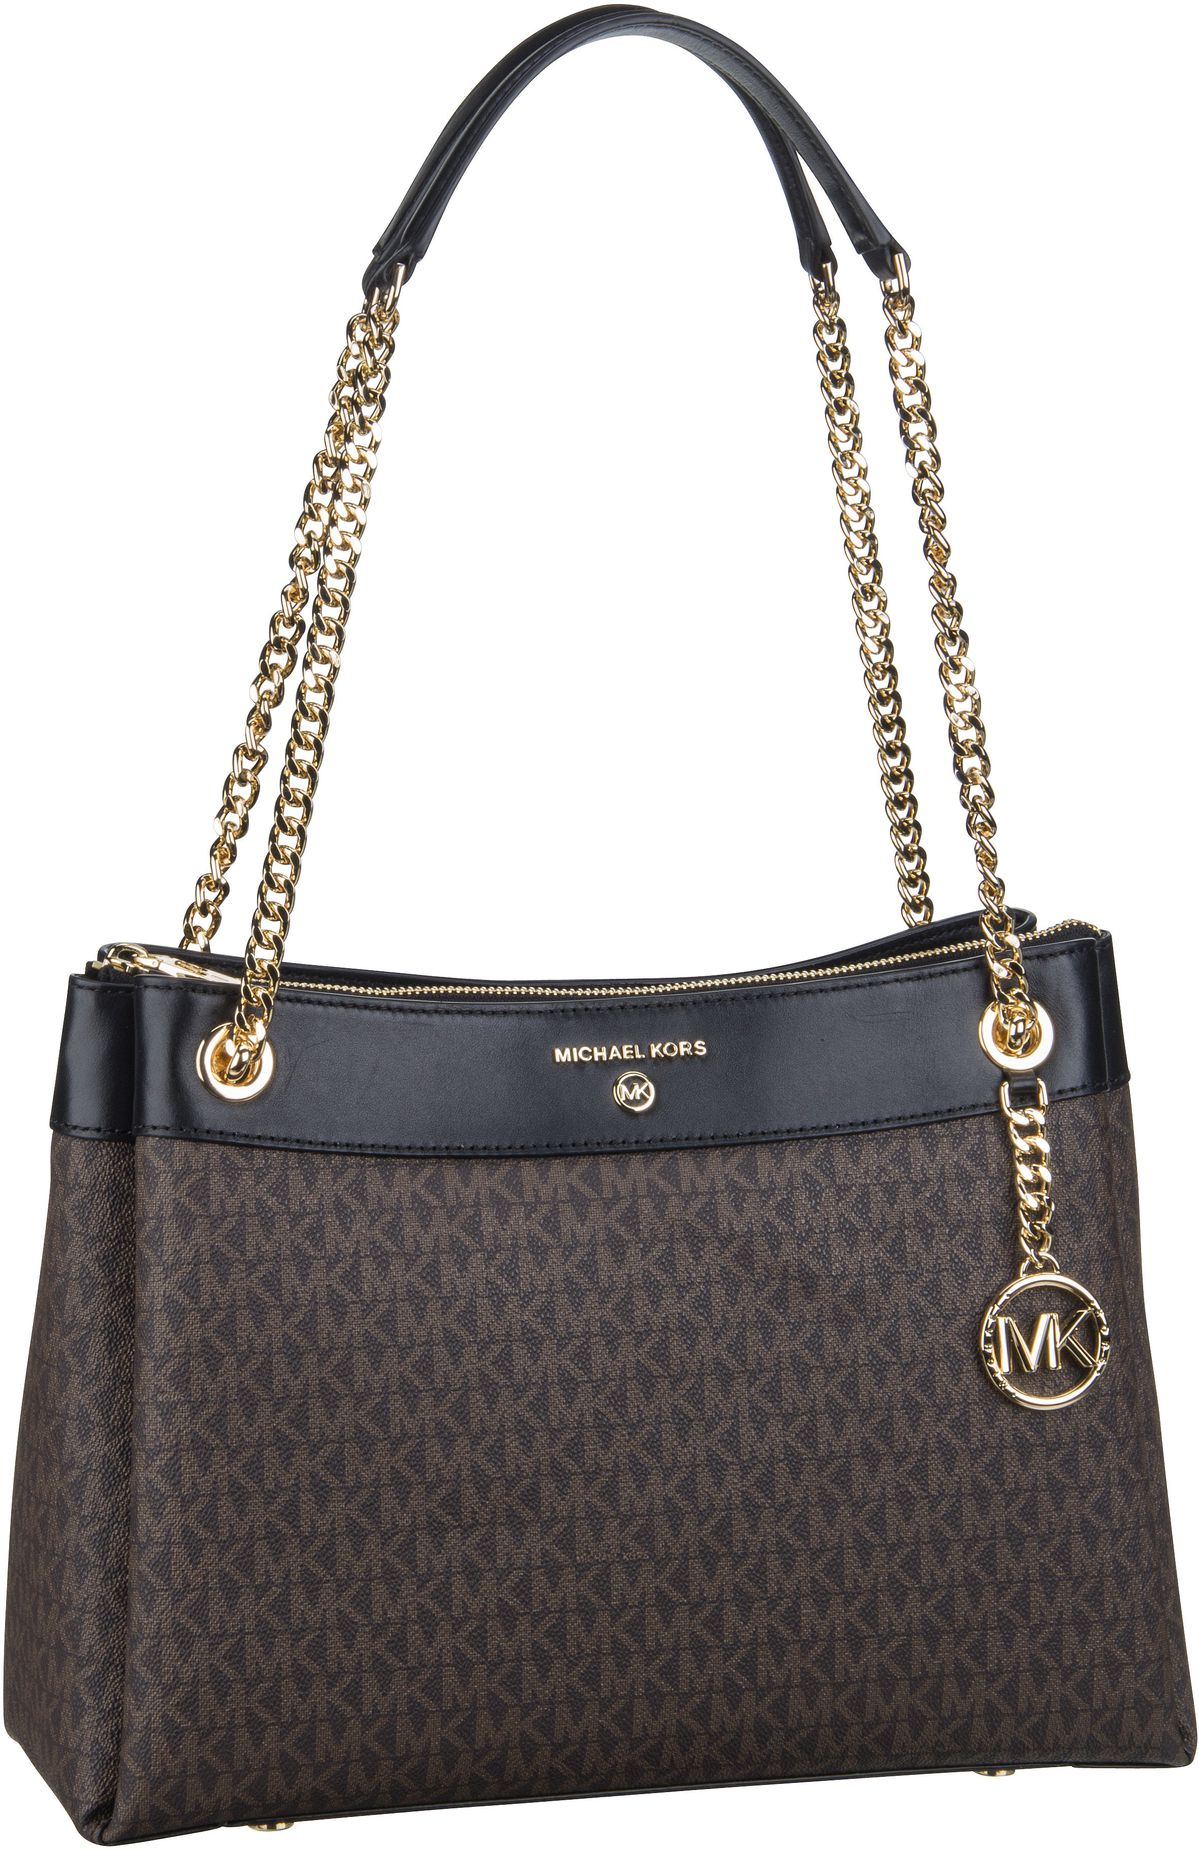 Michael Kors Handtasche Susan Medium Shoulder MK Signature Brown/Black